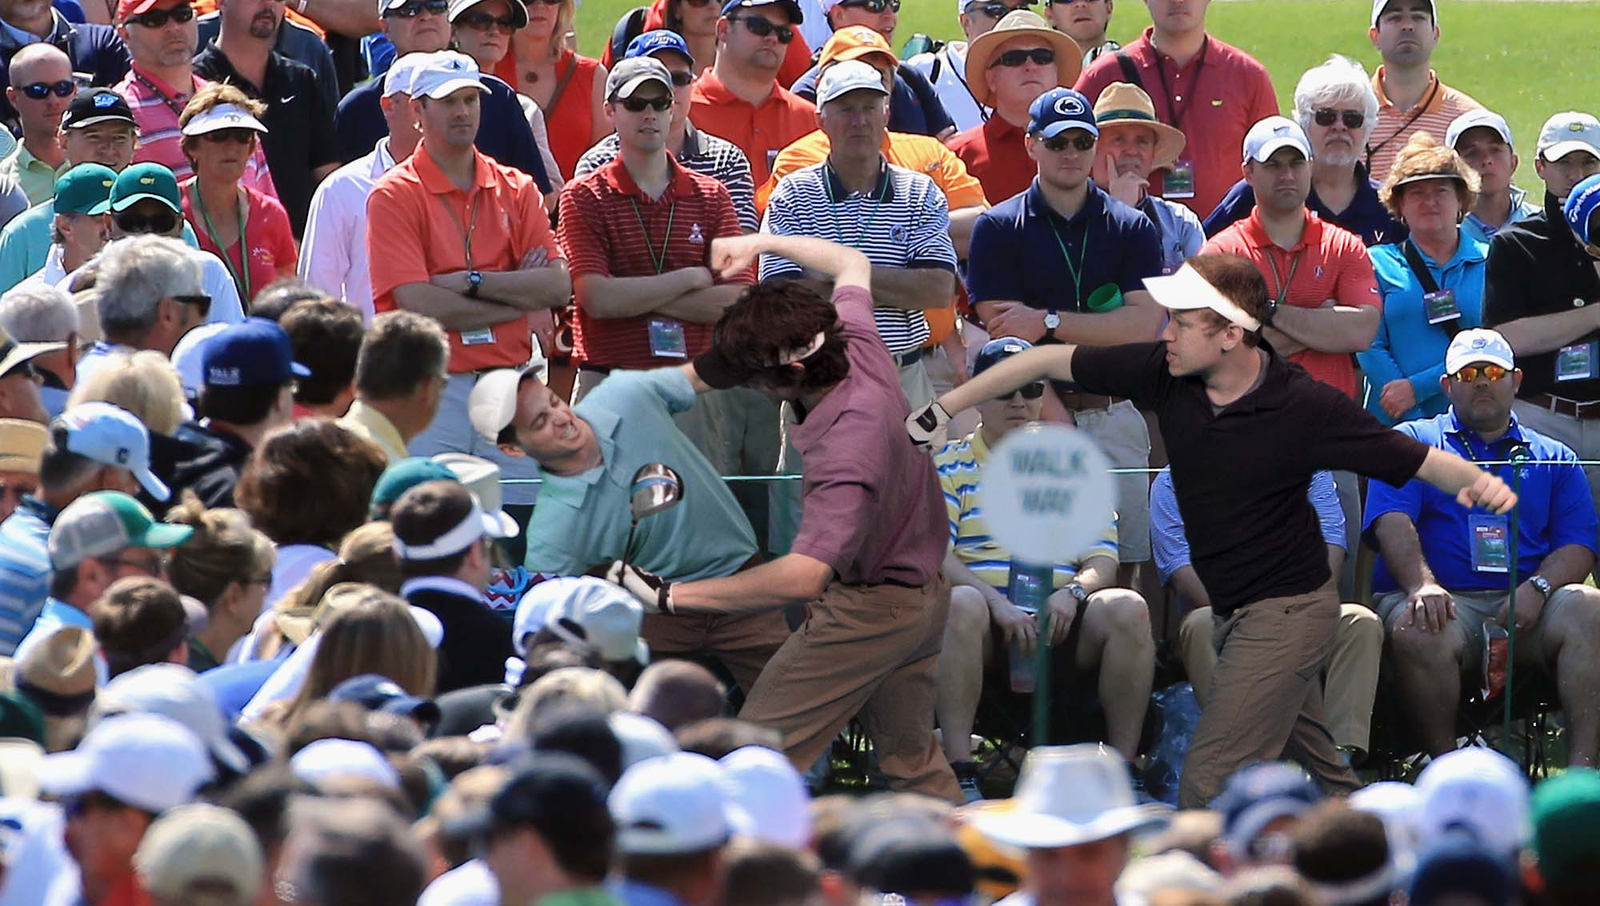 Rival PGA Hooligans Clash During Final Round Of Masters